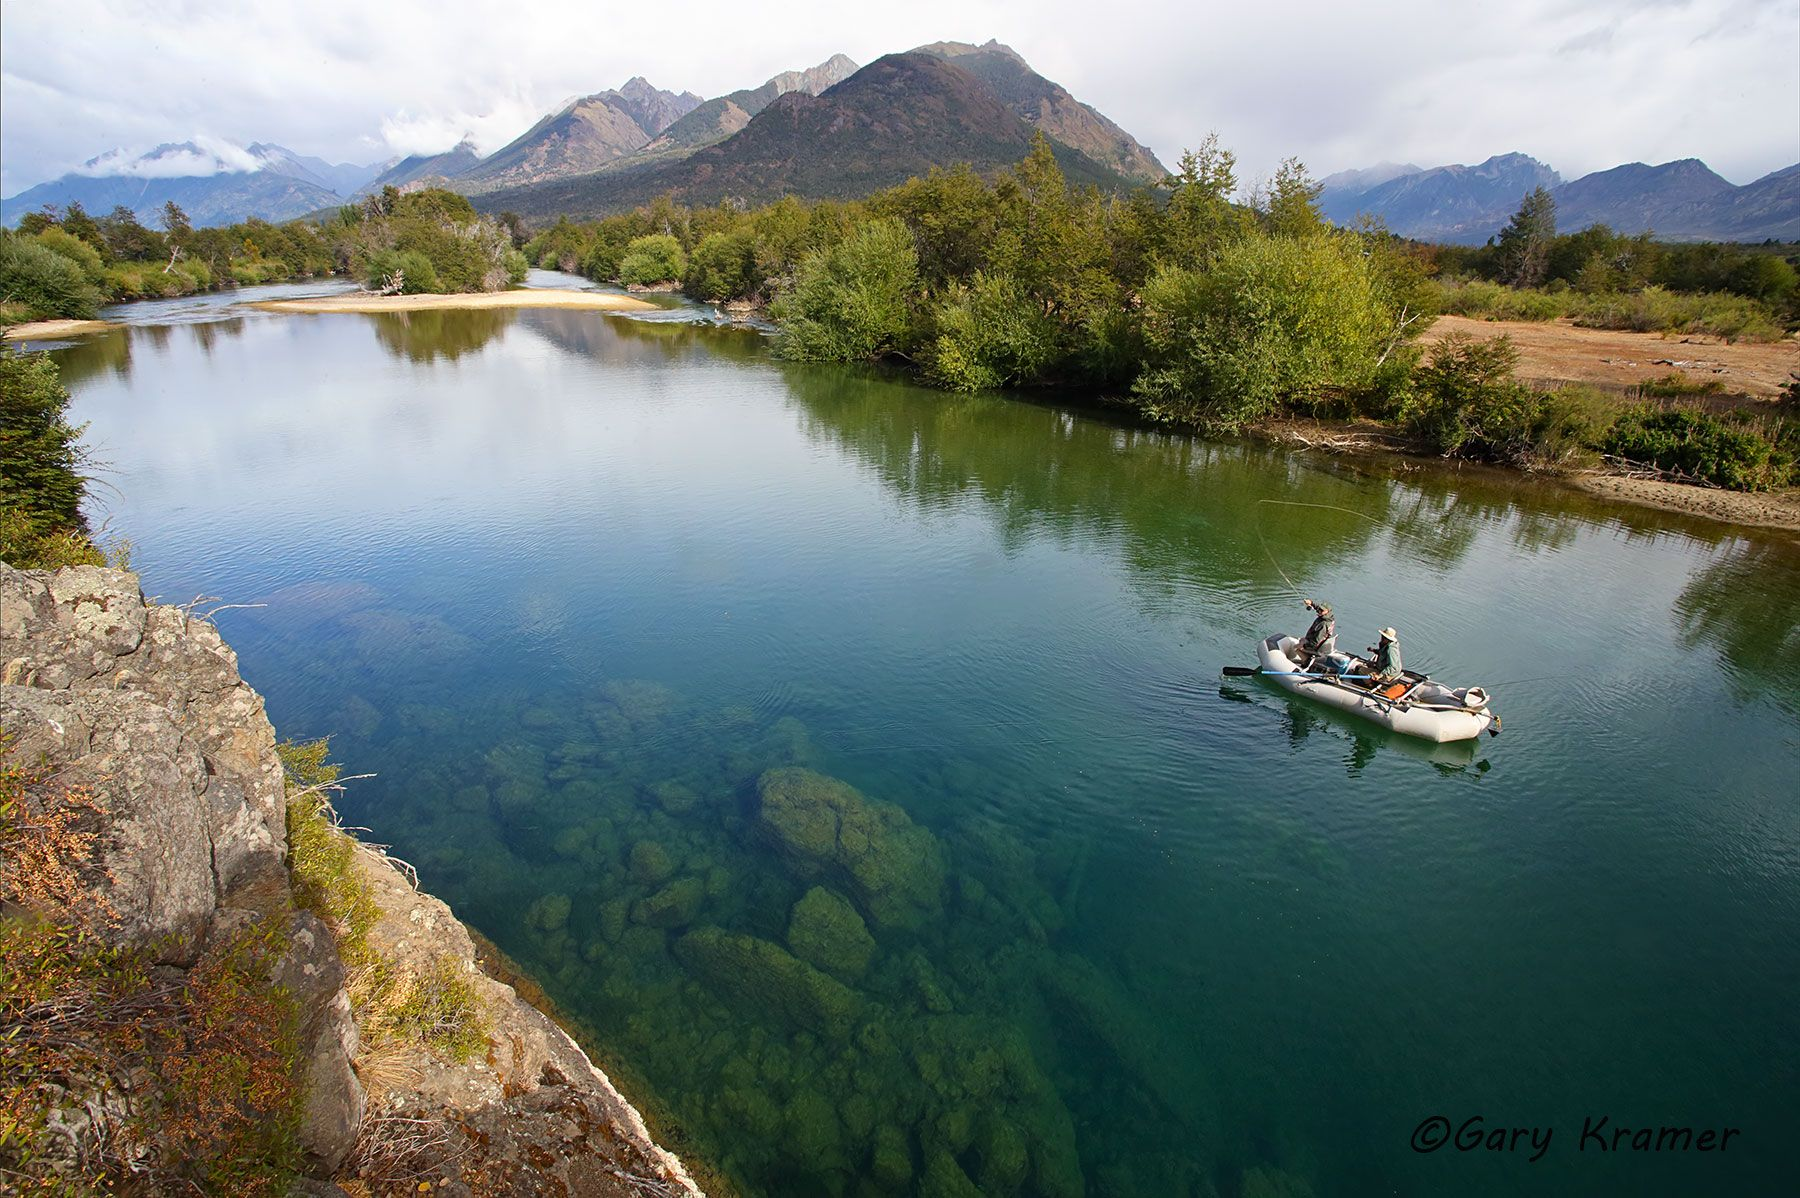 Flyfisherman/guide floating the Carrileufu River, Argentina - SFArc#013d